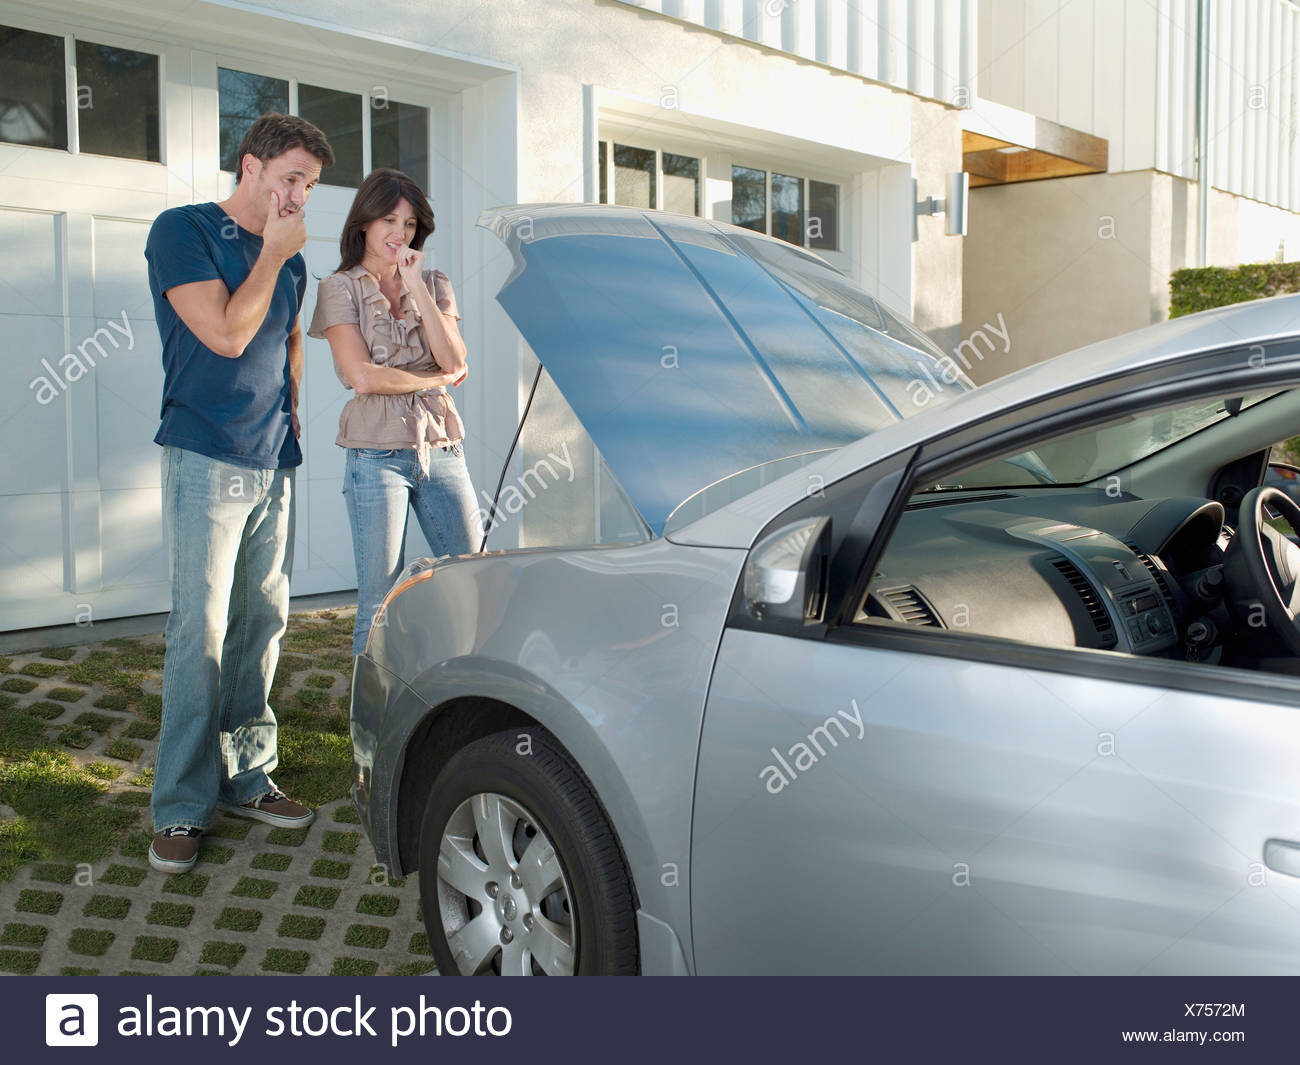 Confused couple looking at car engine - Stock Image